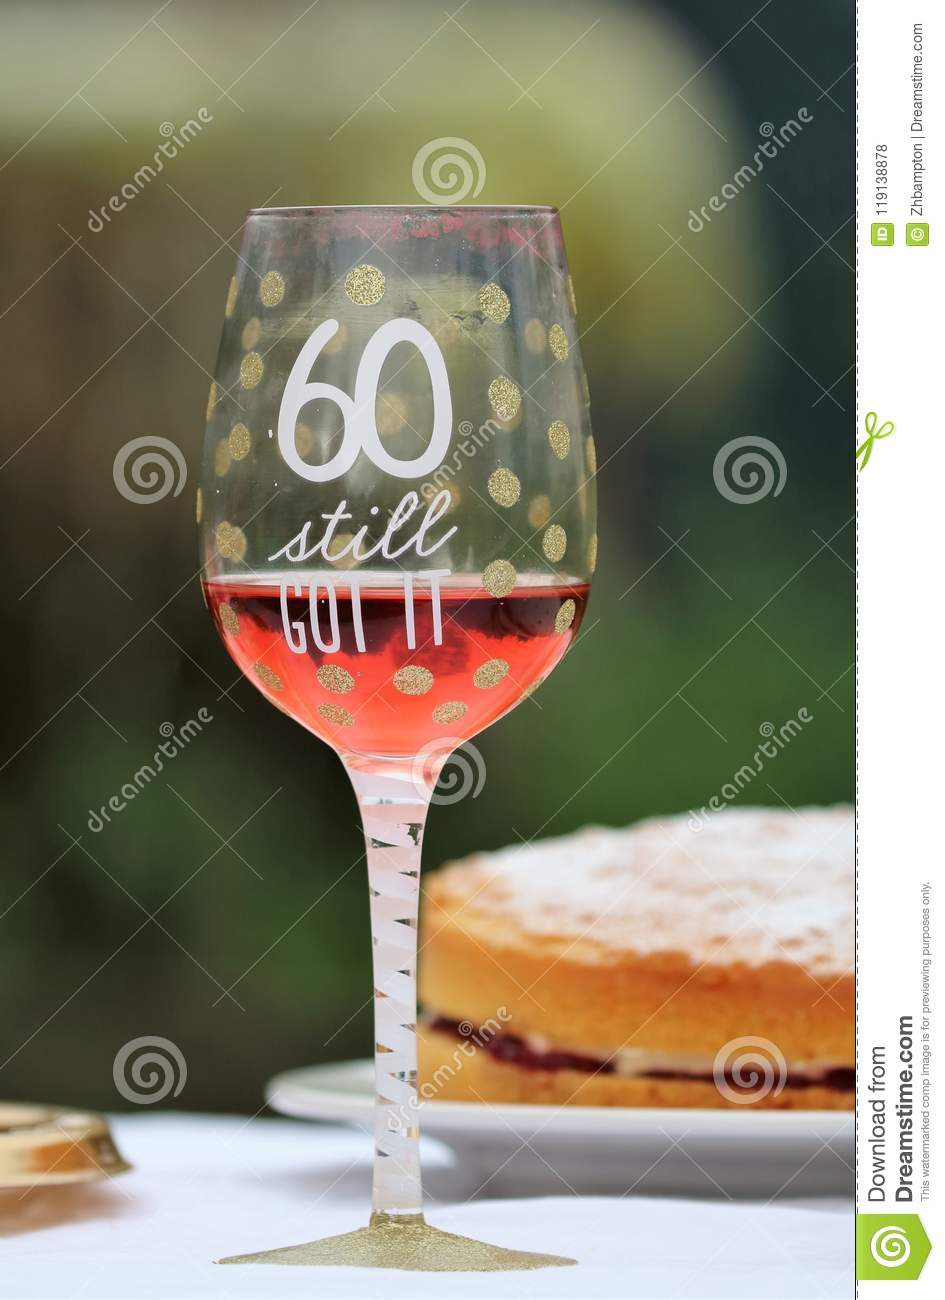 A Glass And Cake For Celebrating 60th Birthday With Rose Wine 60 Still Got It